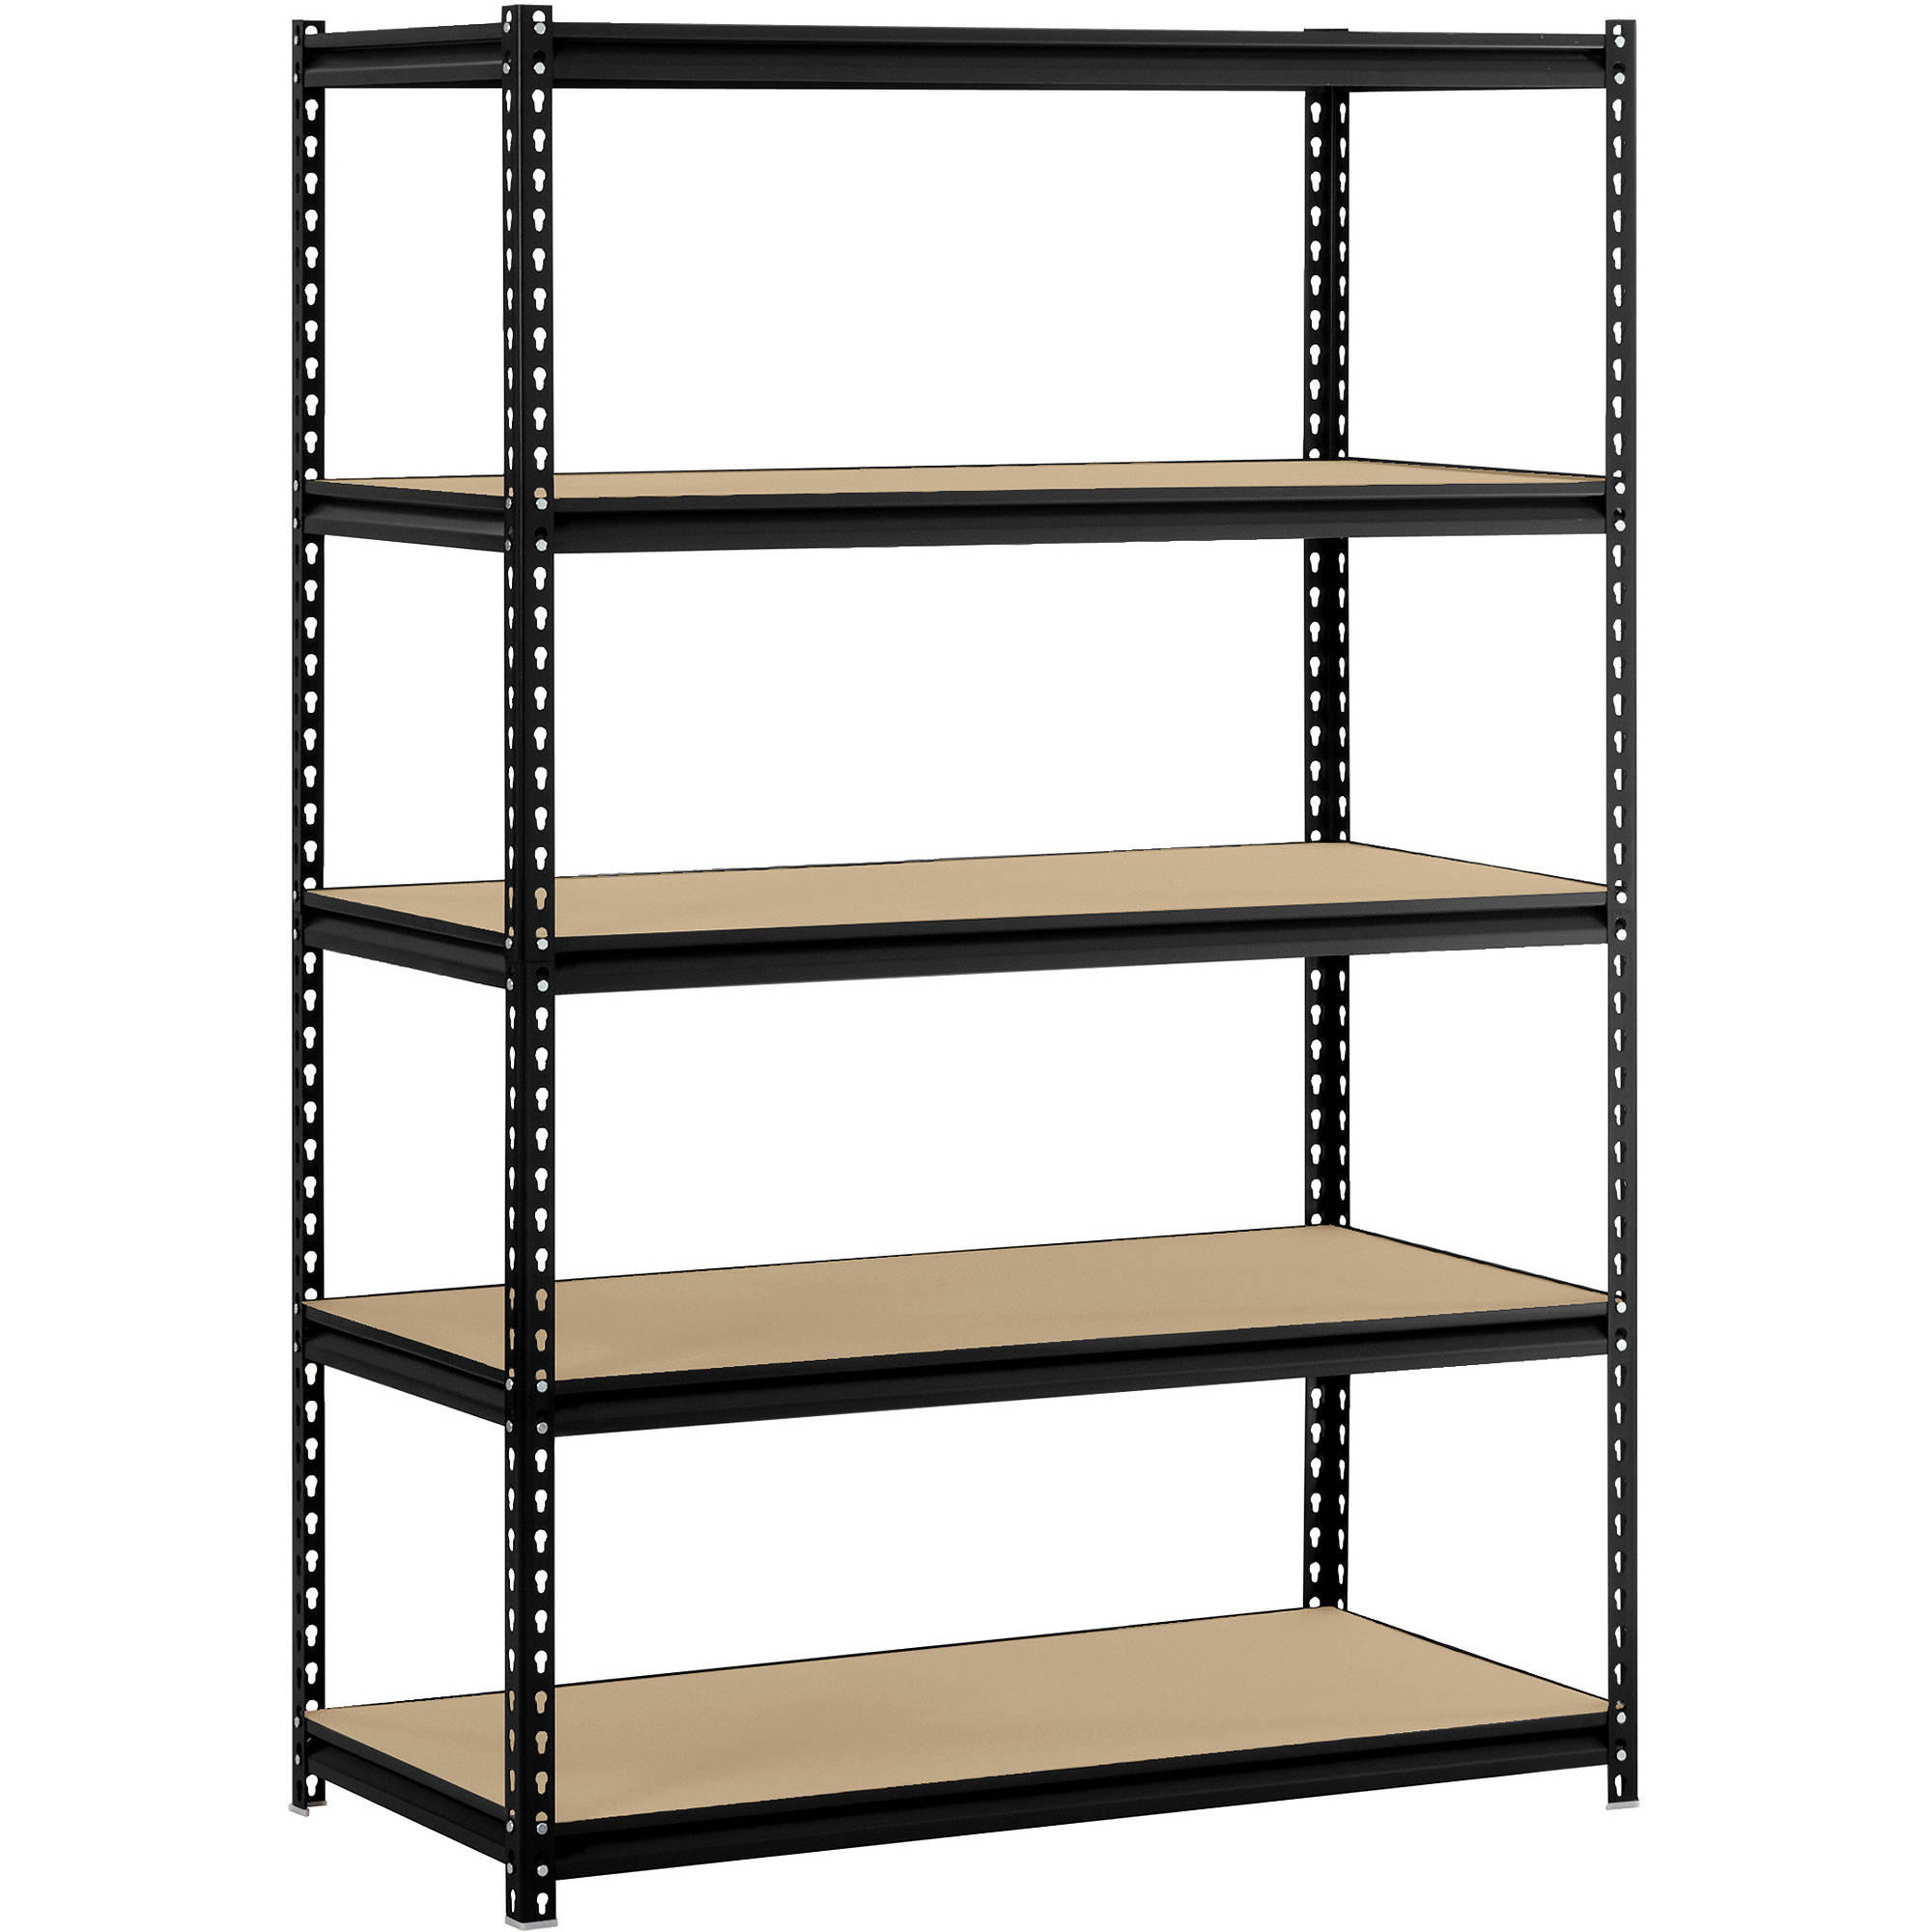 storage unit itm shelving garage for heavy tier duty boltless metal grey shelves